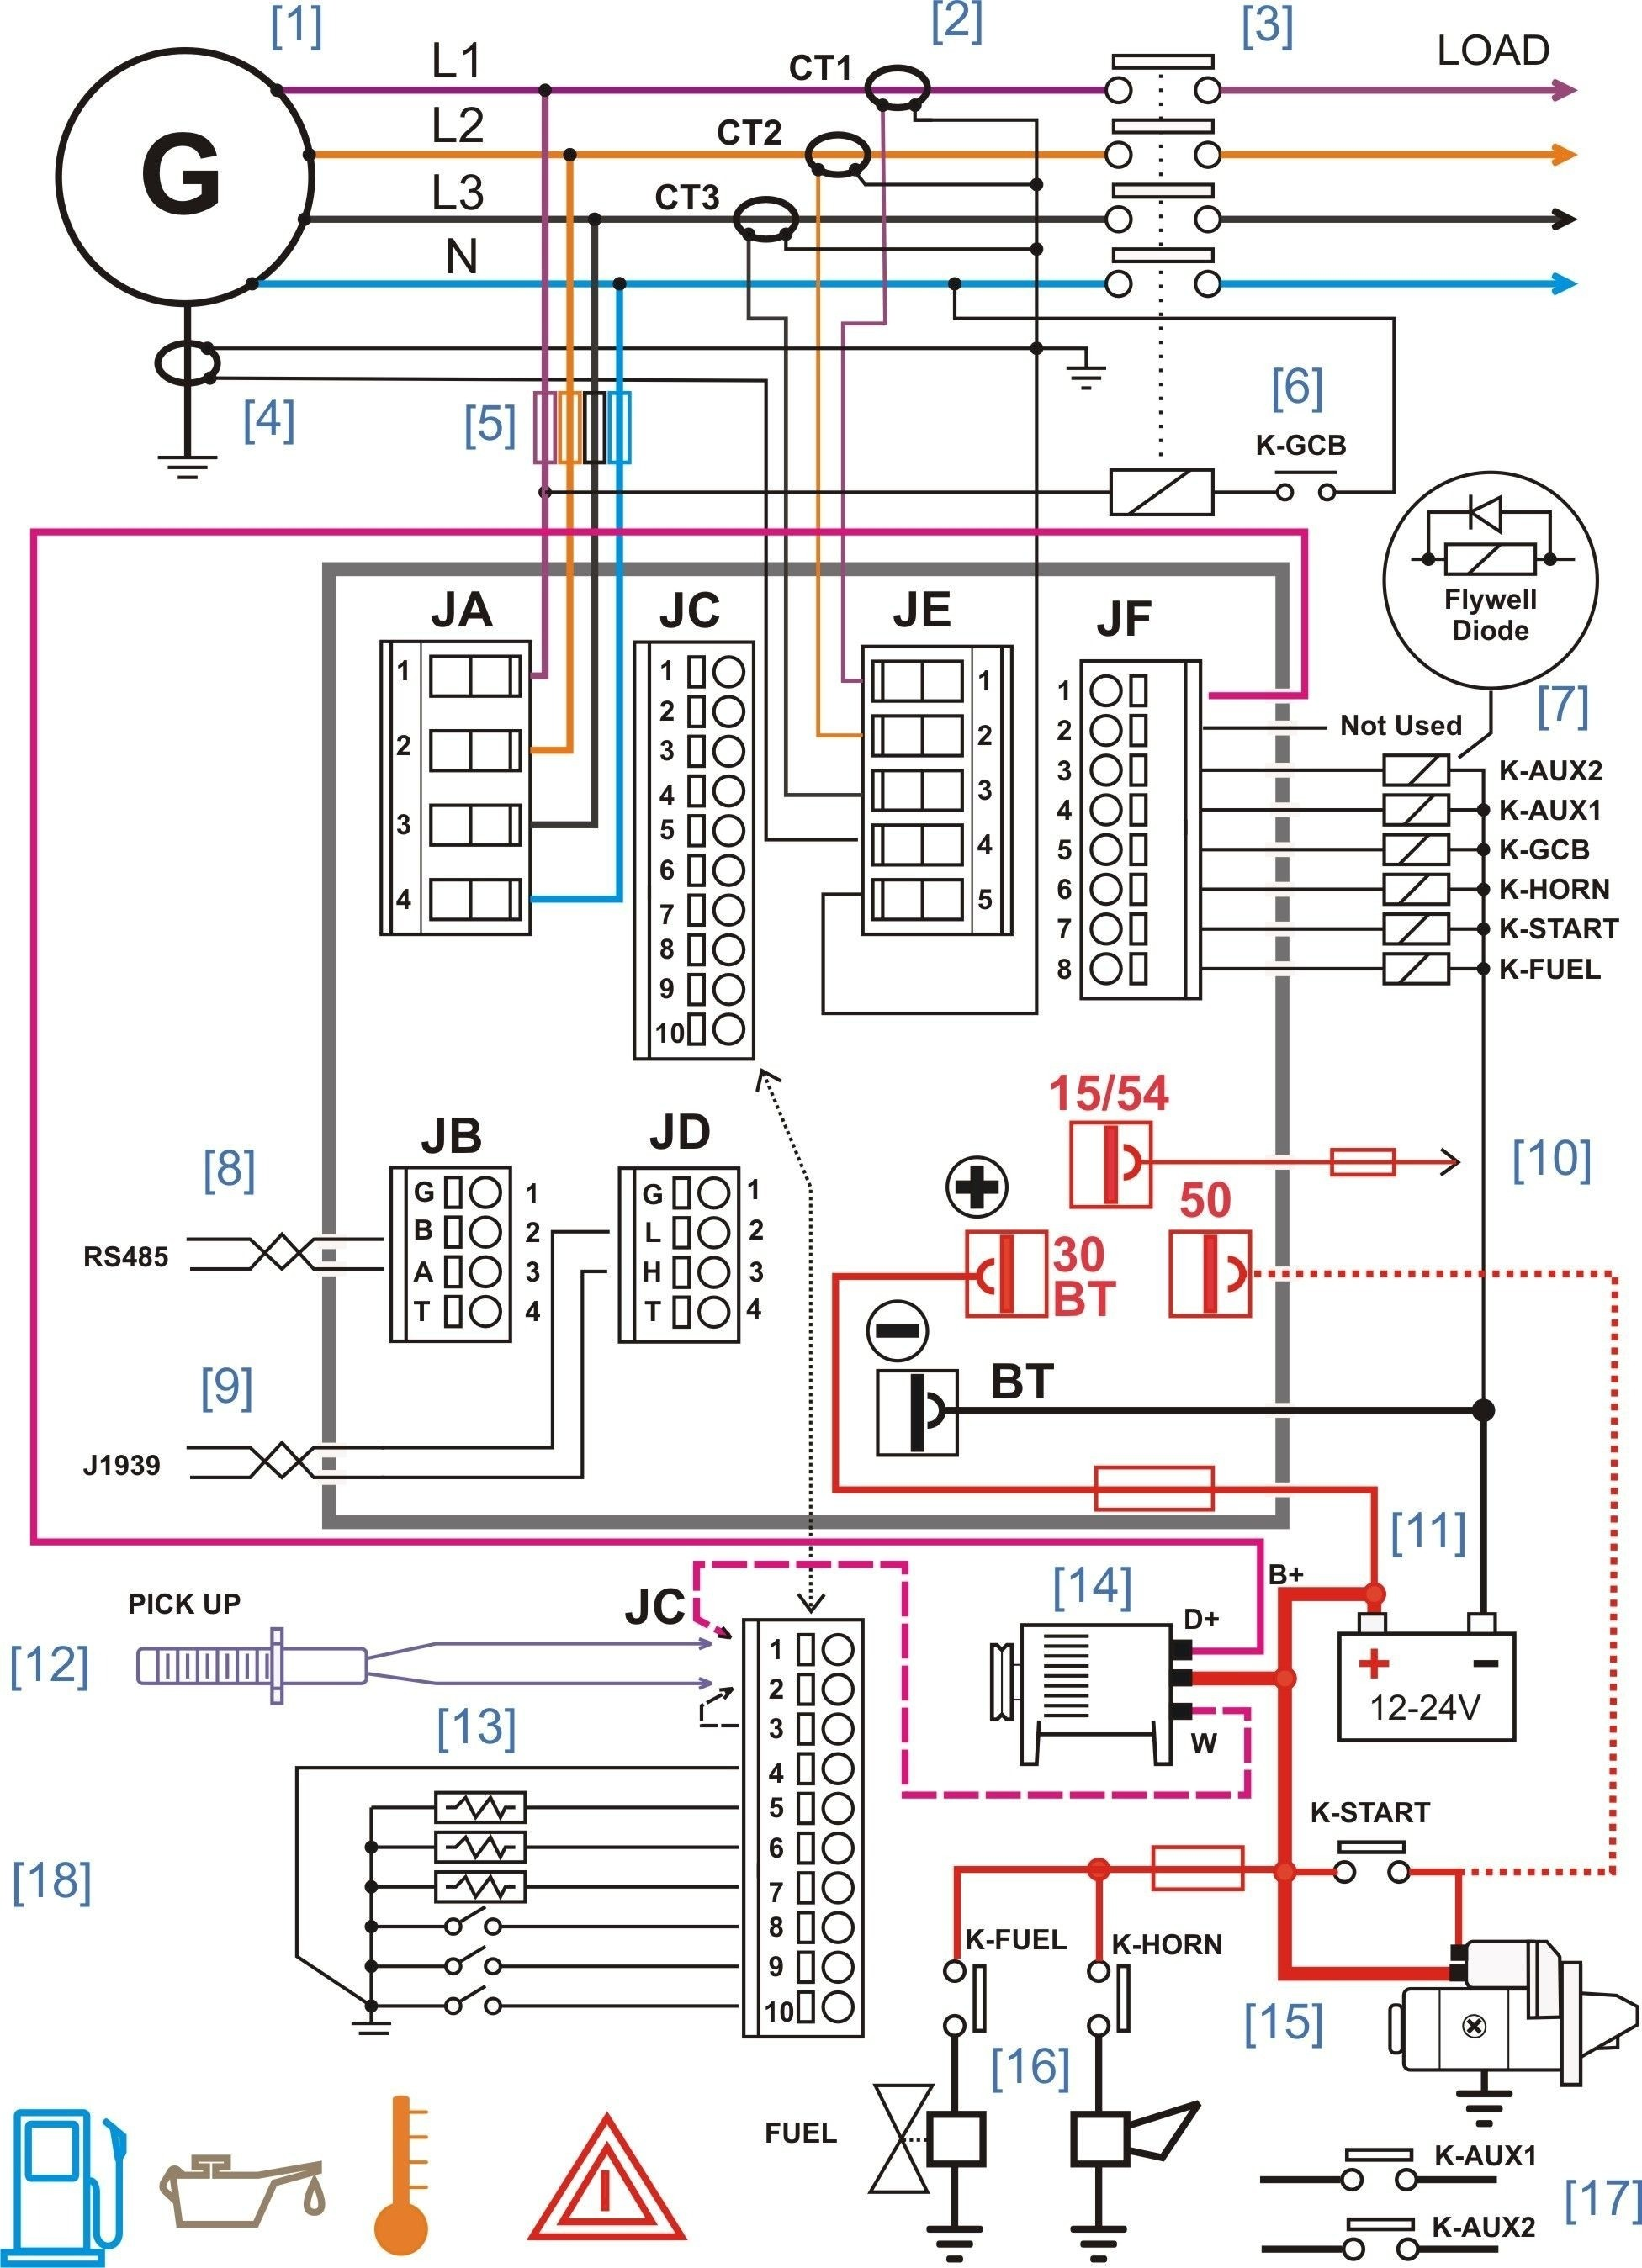 network wiring diagram software Electrical House Wiring Diagram software